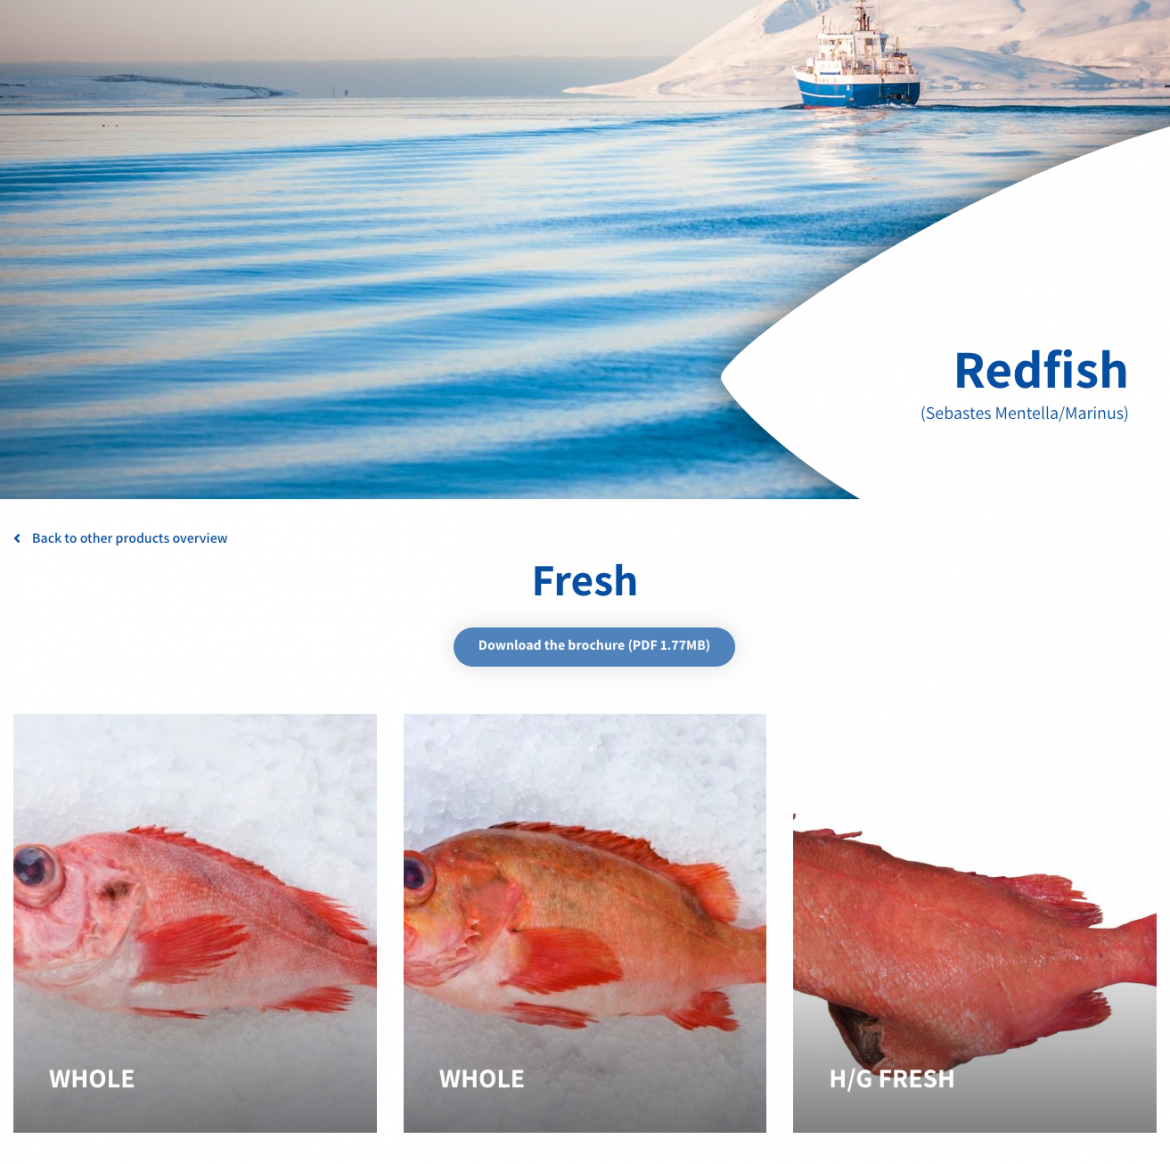 redfish-ice-fresh-seafood-wwwicefreshis.png